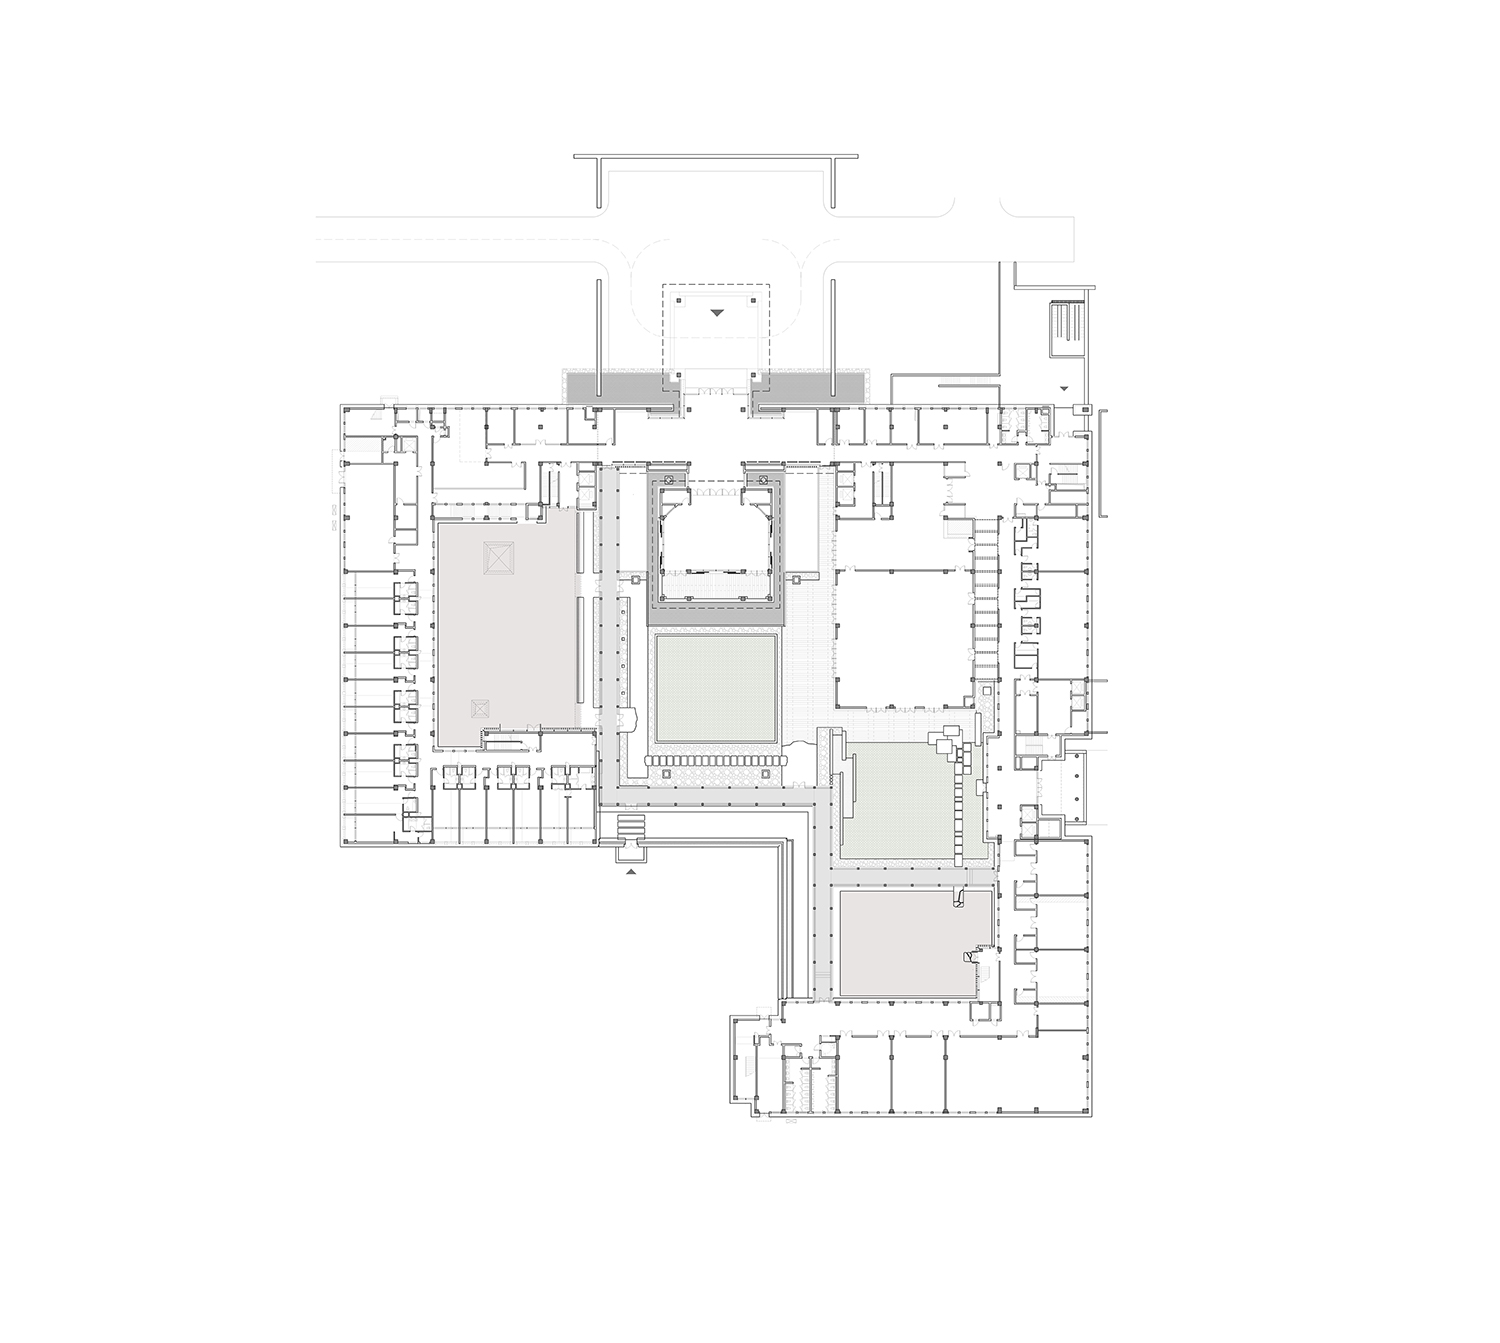 1st Floor Plan The Architectural Design & Research Institute of Zhejiang University}